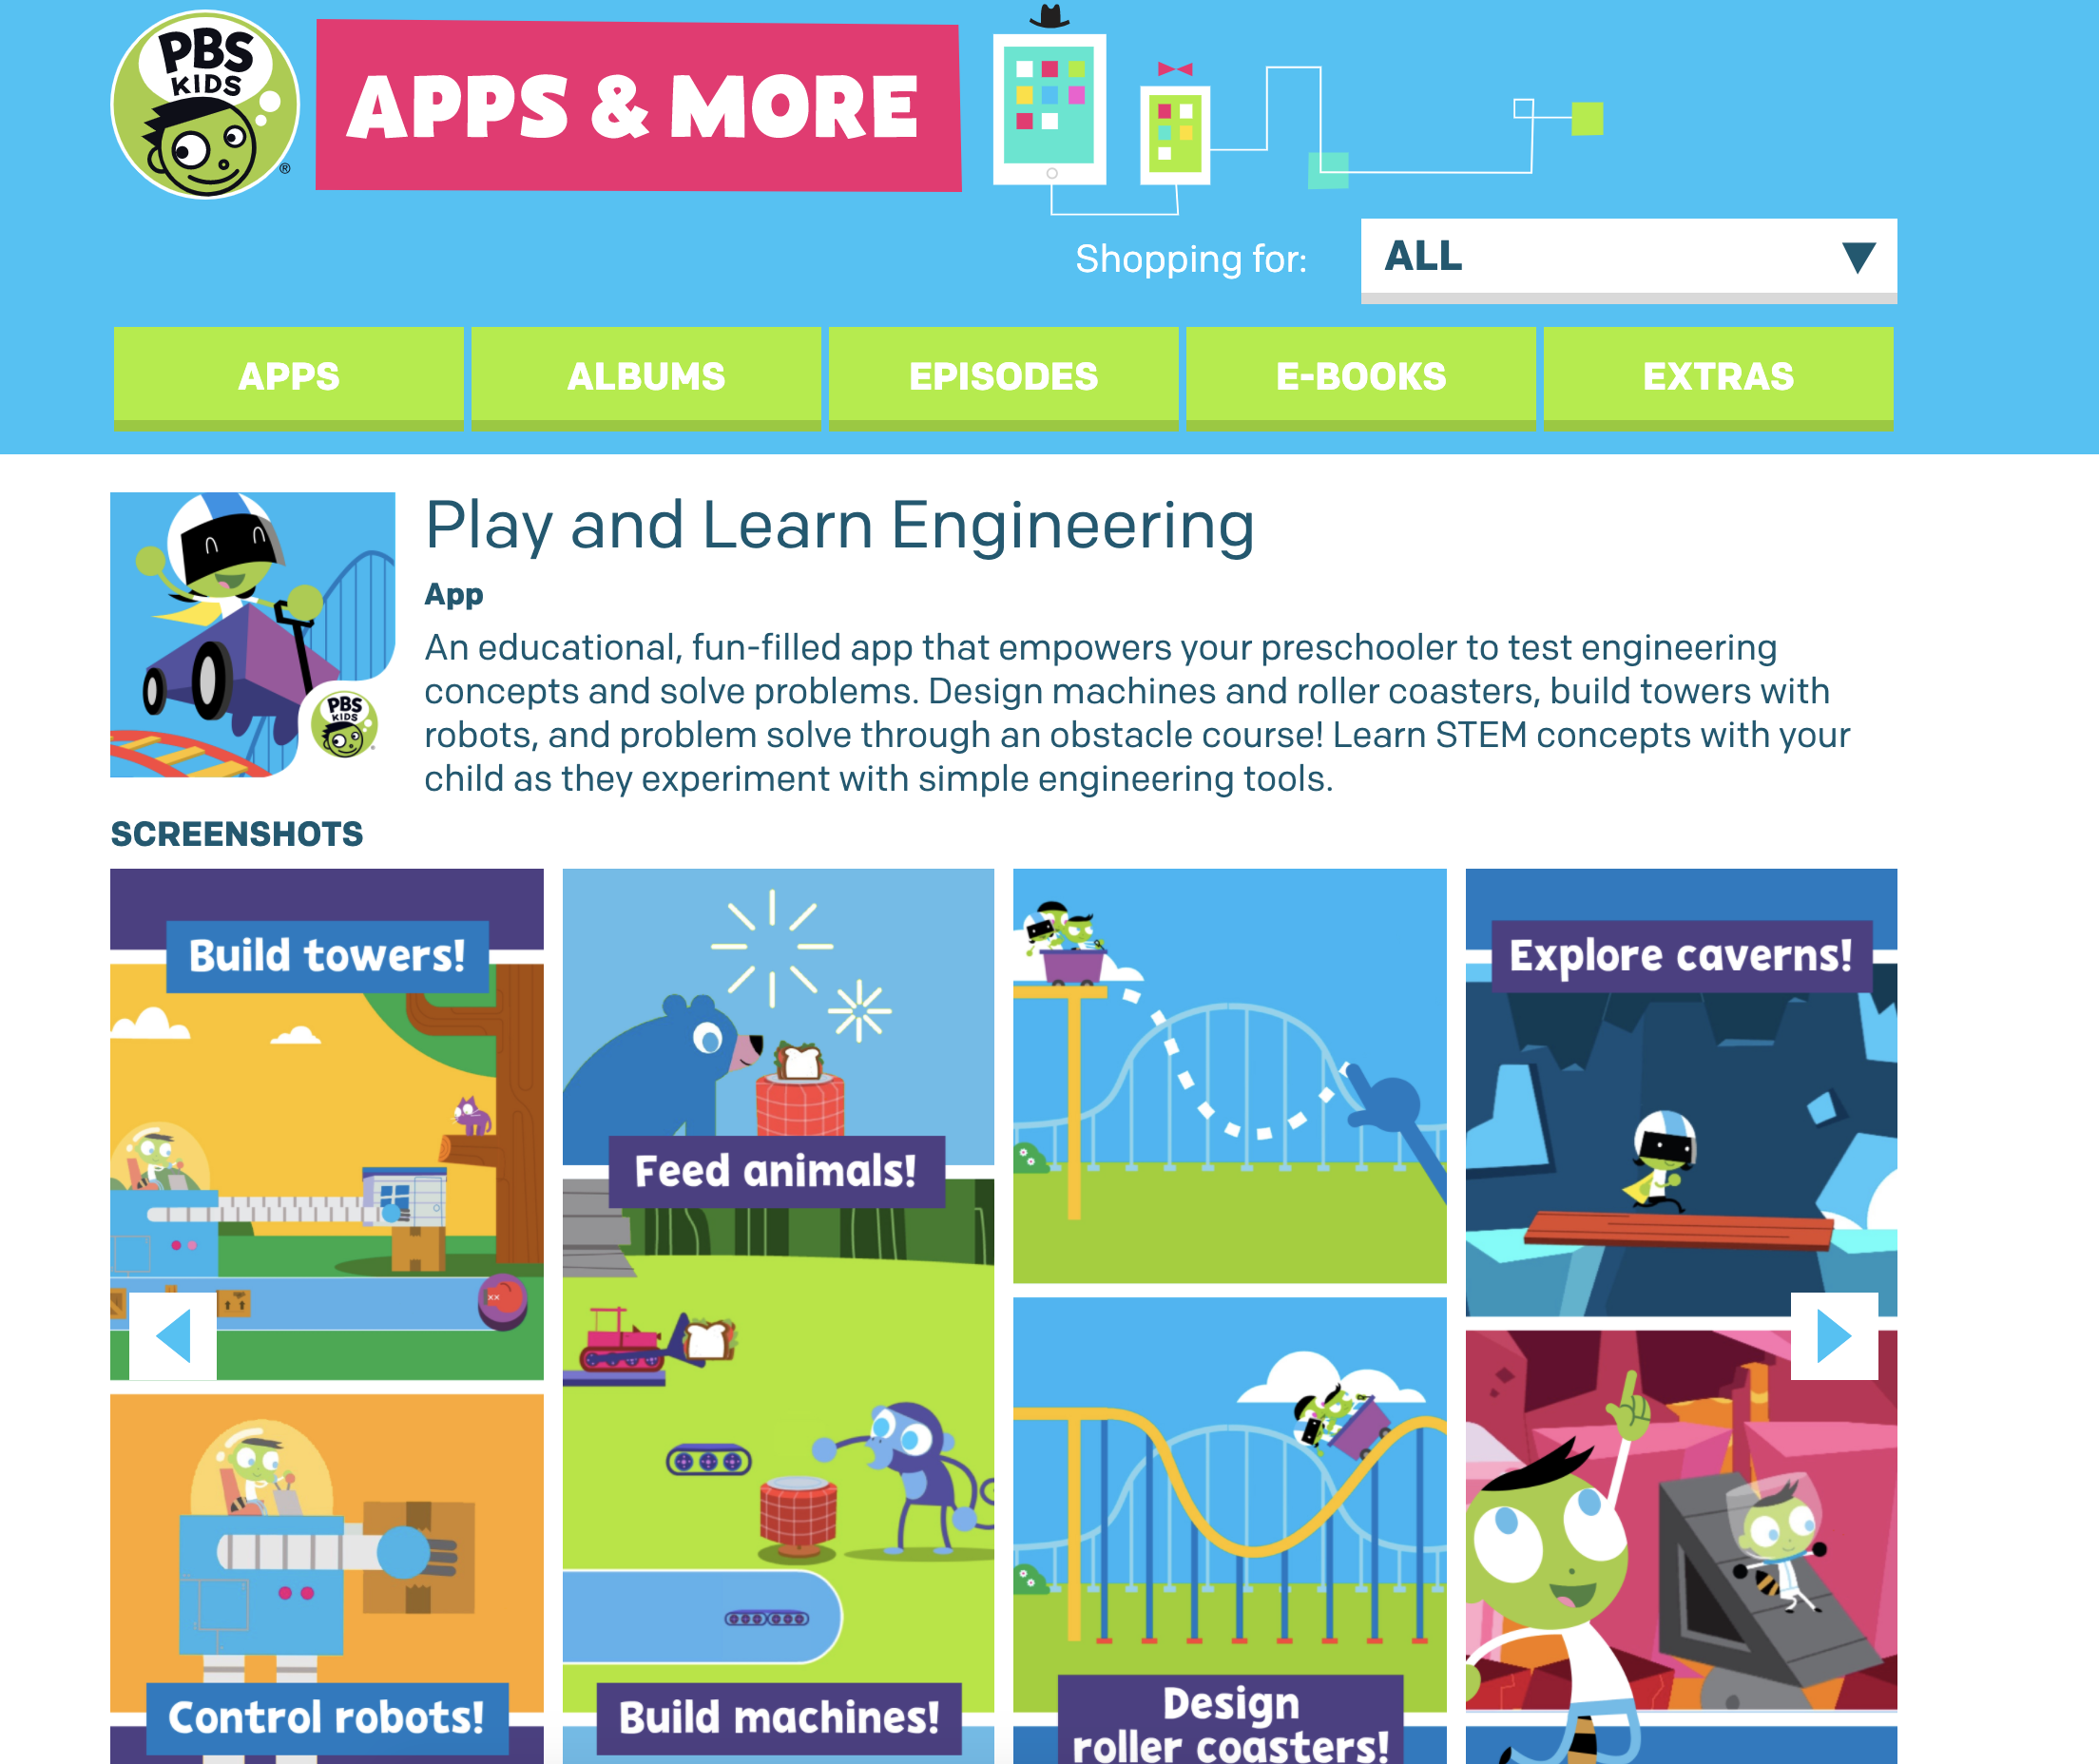 A screenshot of learning apps available on PBS Kids.